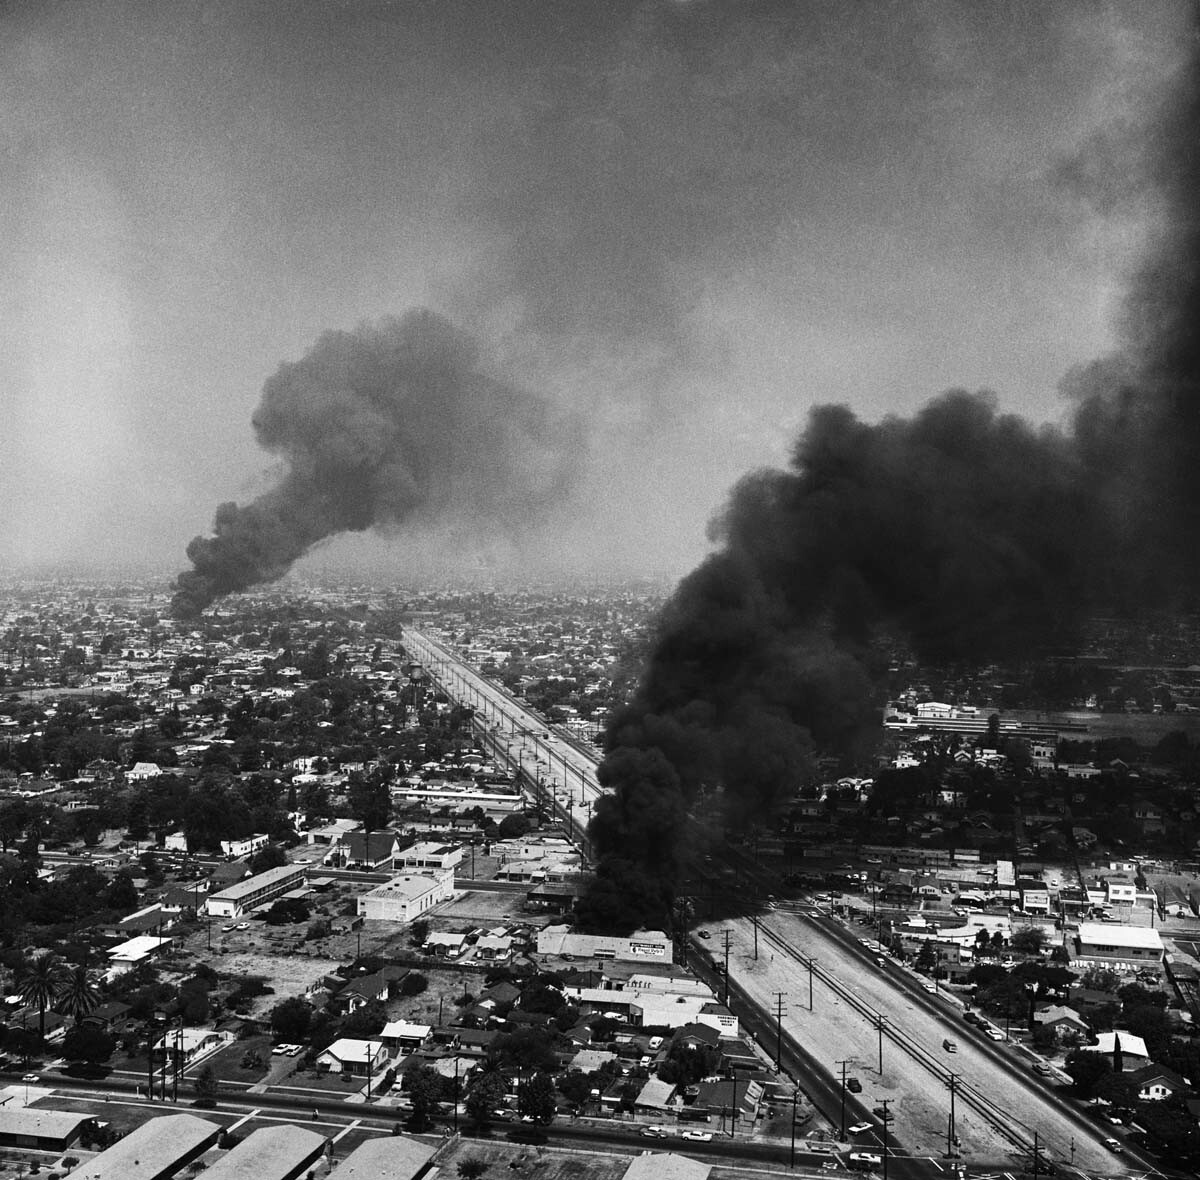 Black smoke darkens the sky over Southeast Los Angeles, during the fourth day of the Watts Uprising | Getty Images